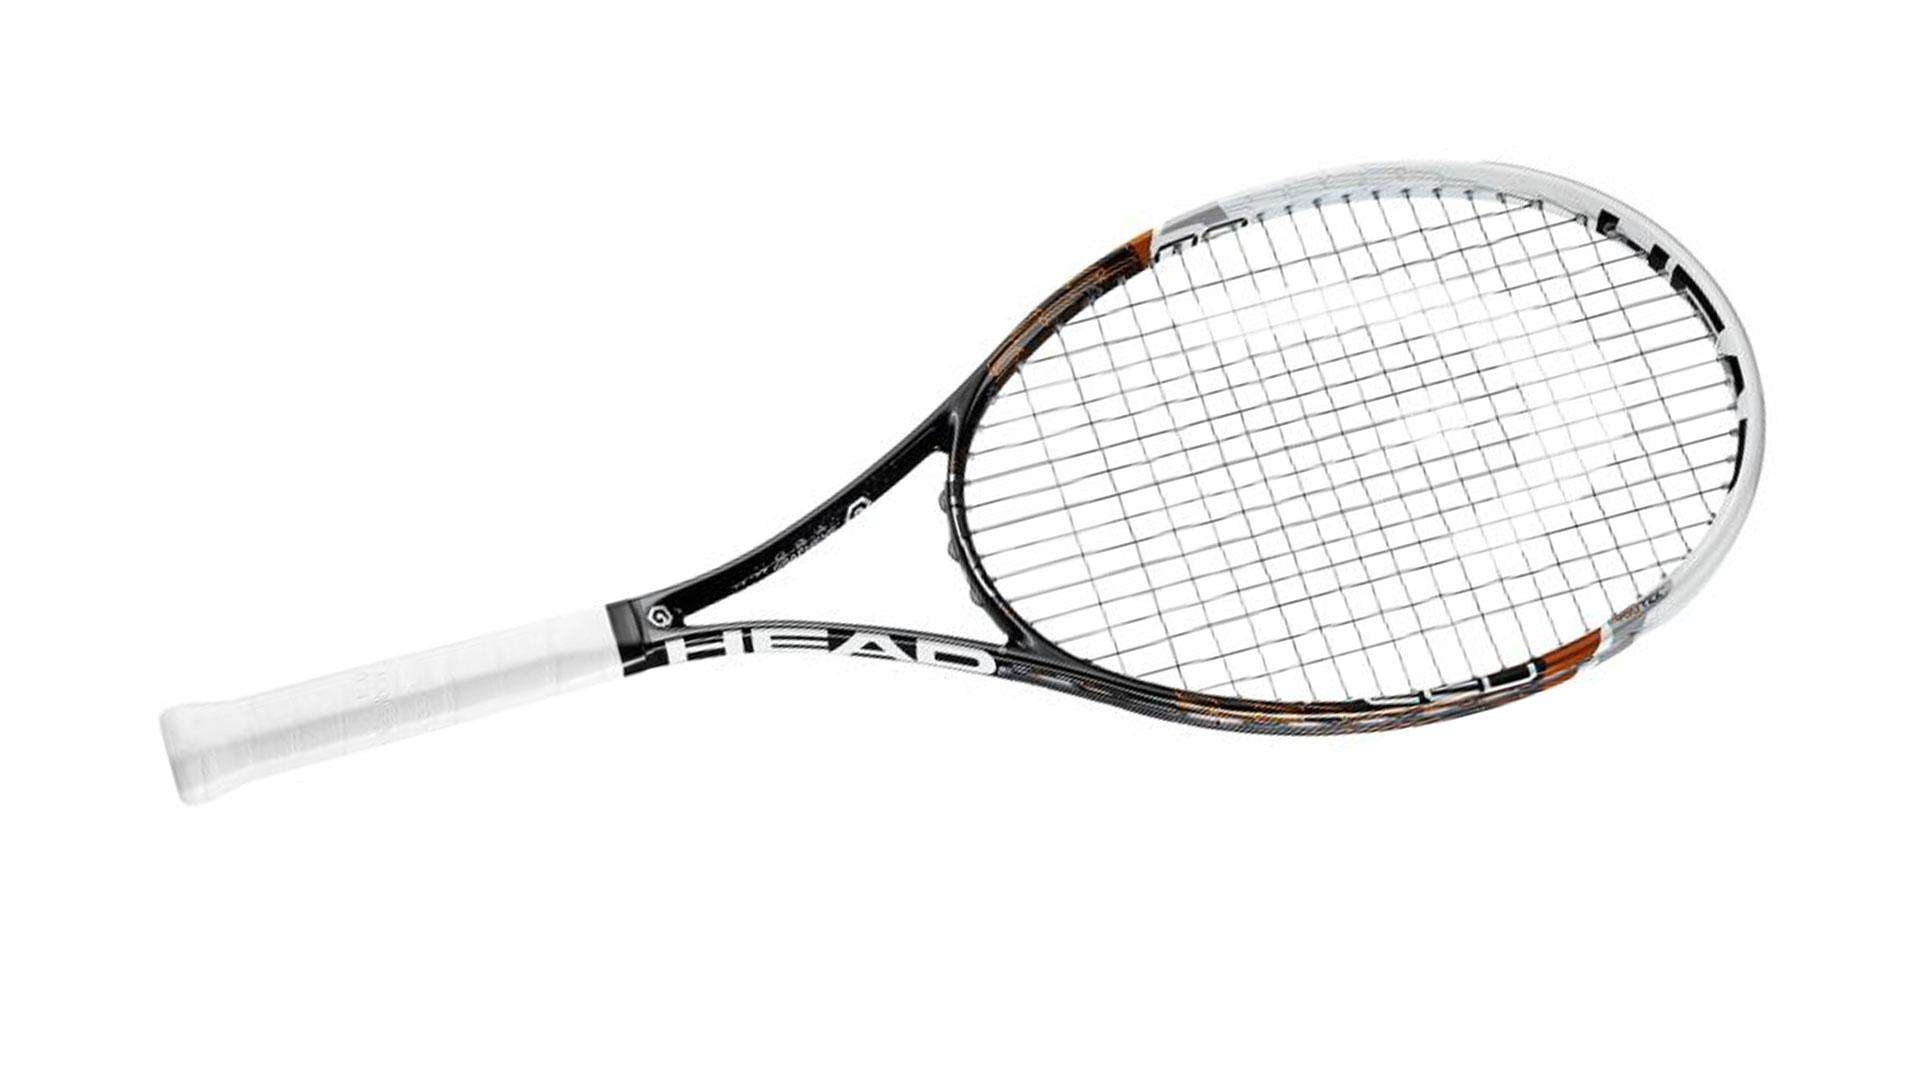 HEAD's Graphene Tennis Racquet IS improving the game